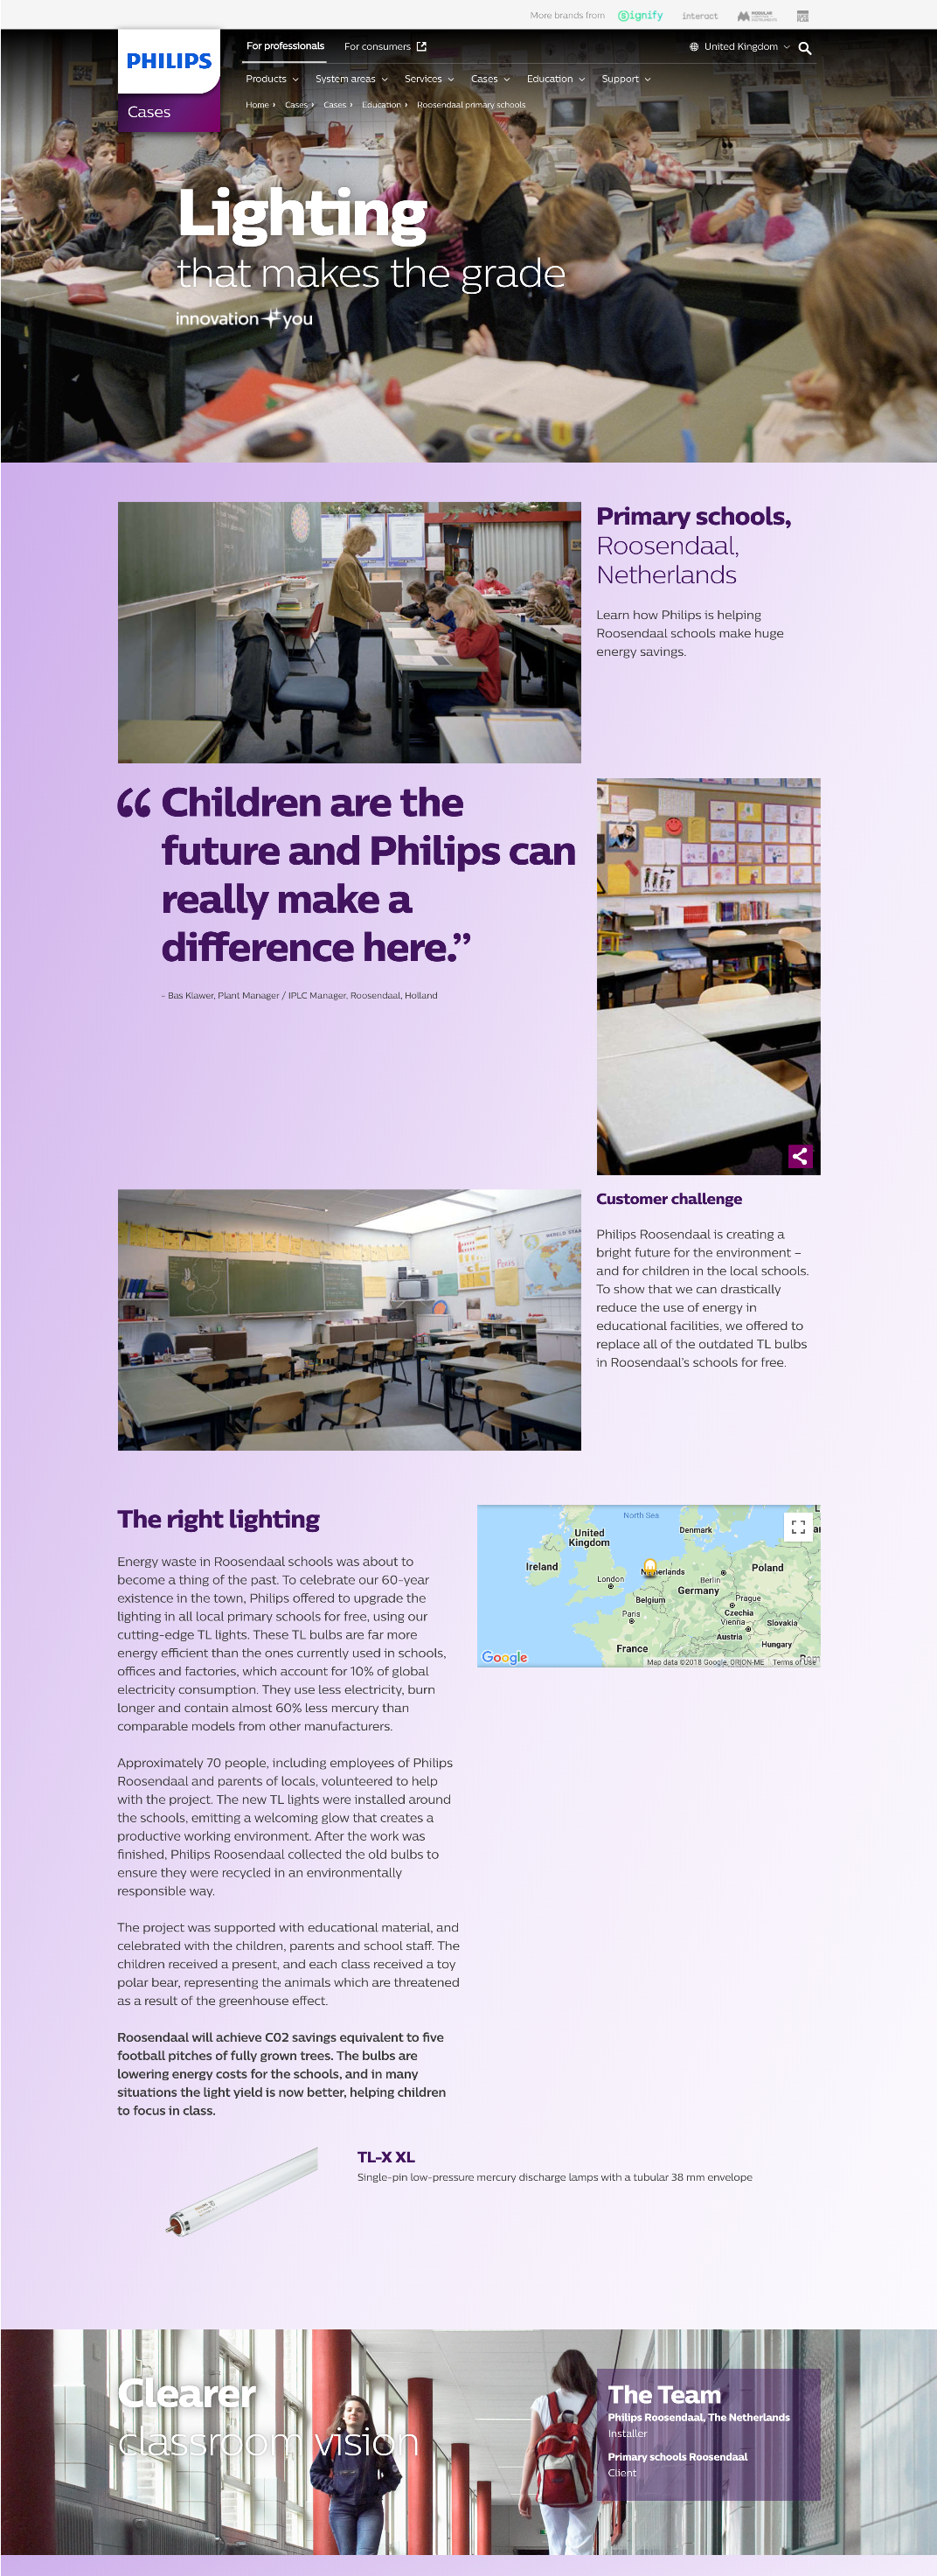 Philips lighting Roosendal case study web page